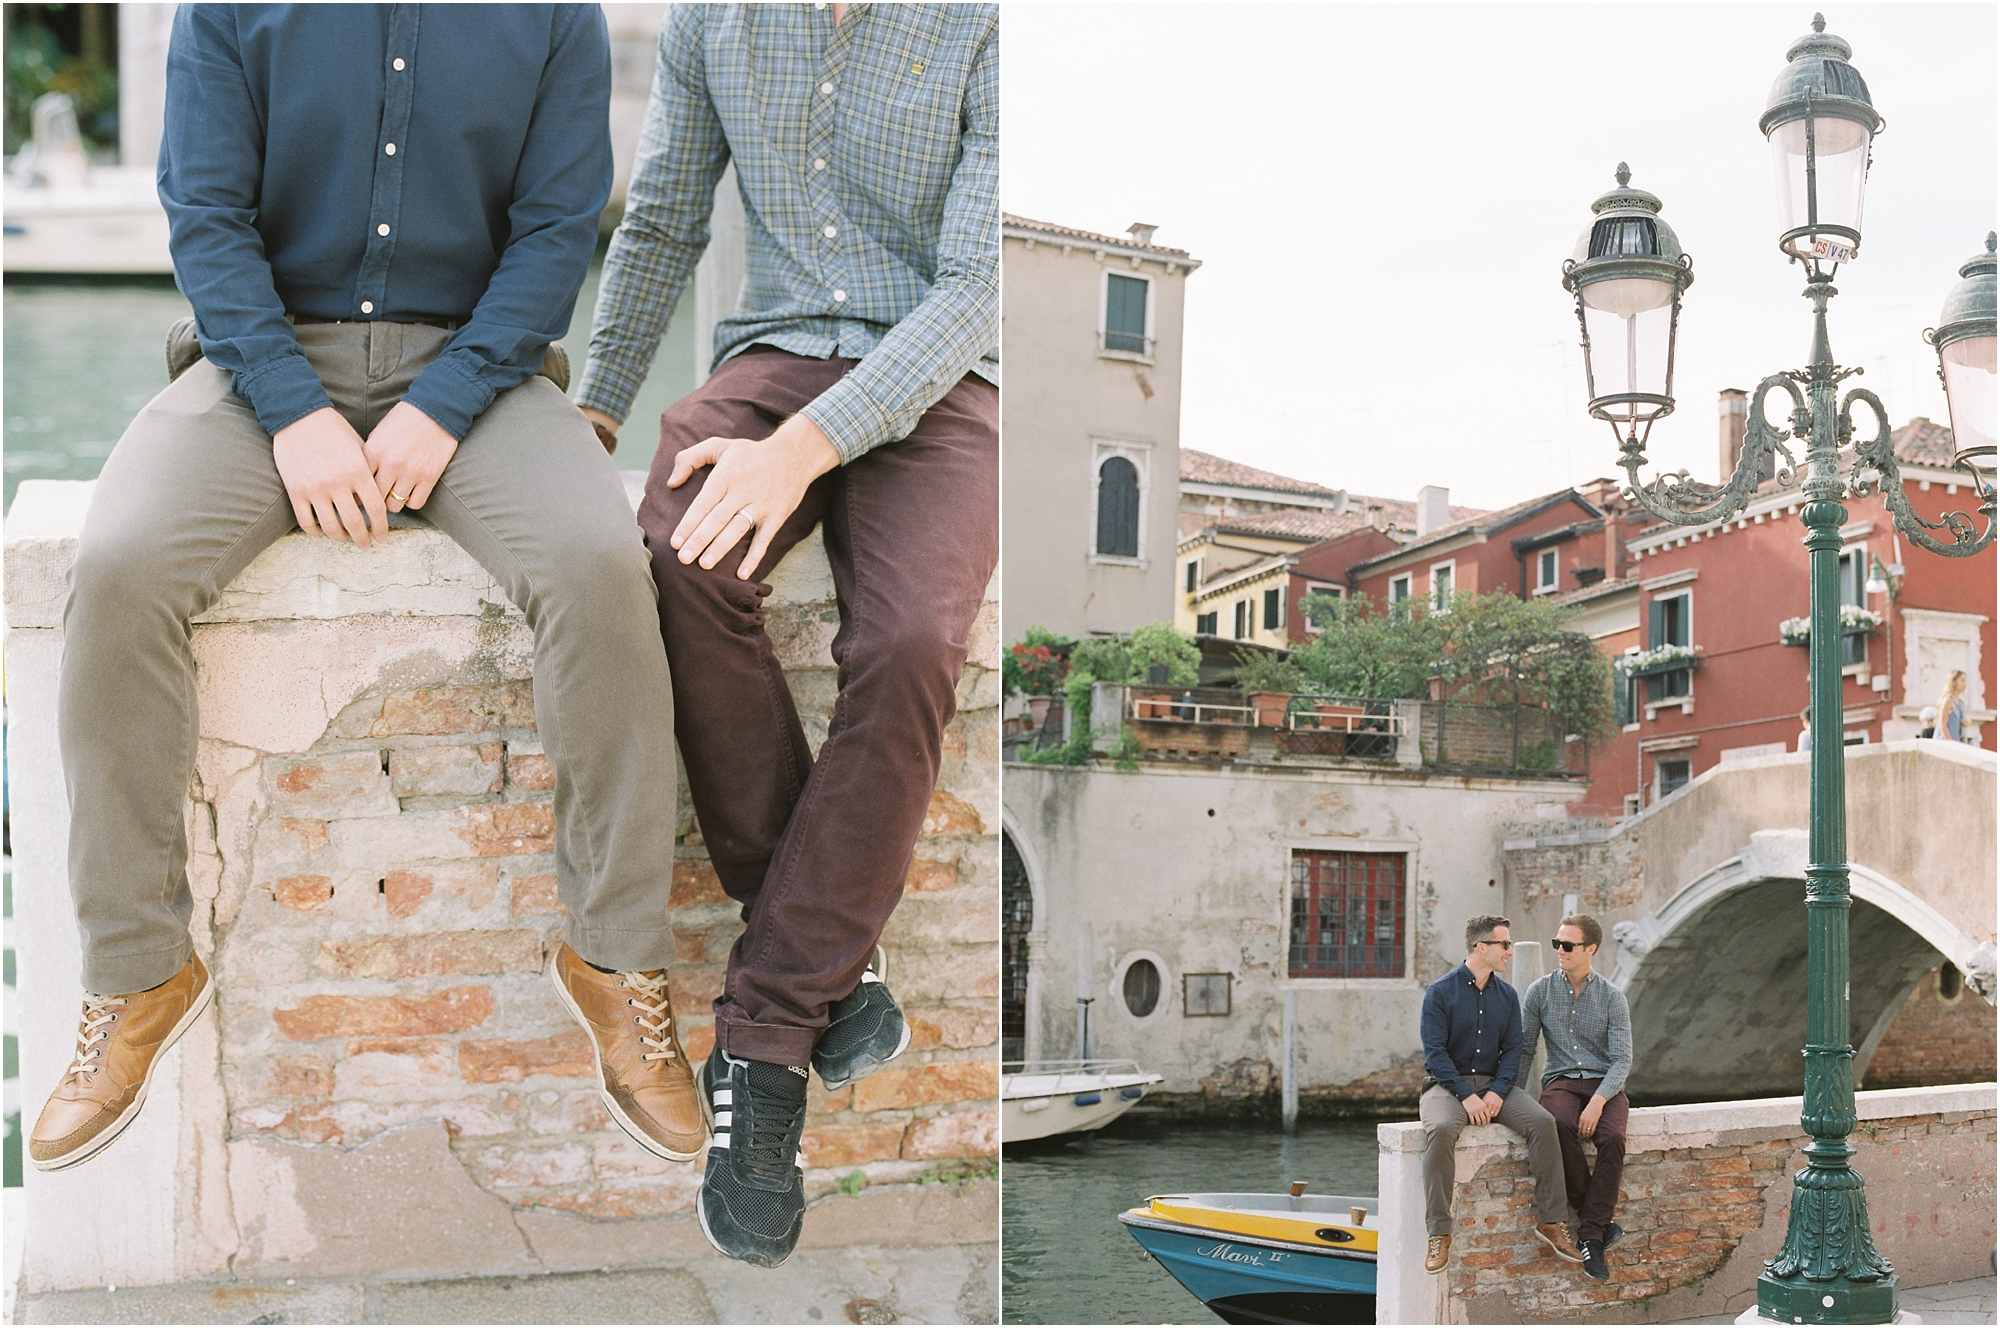 Gay men by bridge in Venice Italy